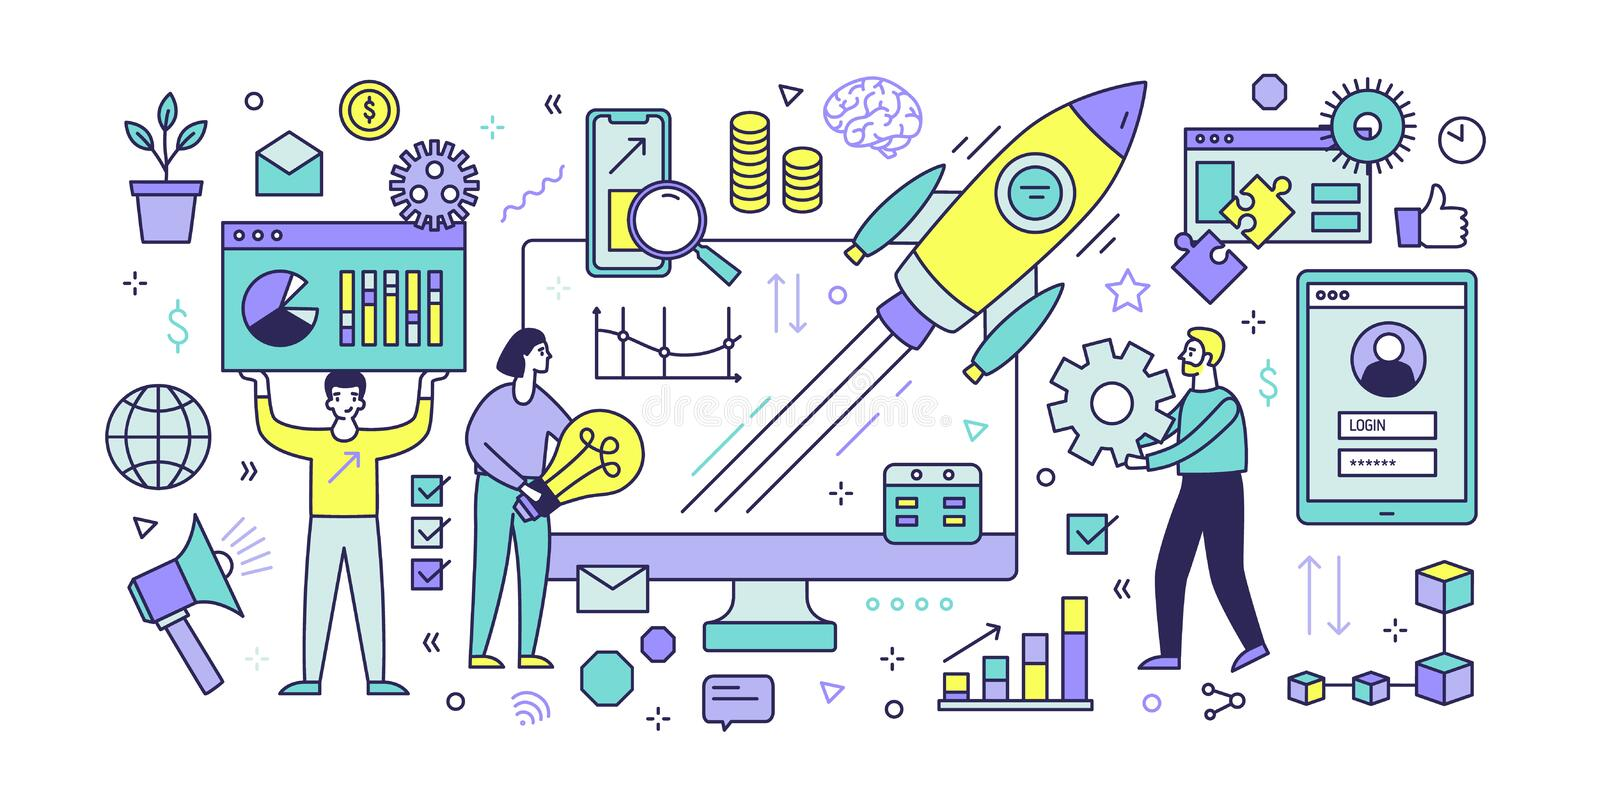 Banner template with computer display, diagrams, charts, graphs, flying spaceship and people working together under. Digital startup project launch. Modern stock illustration